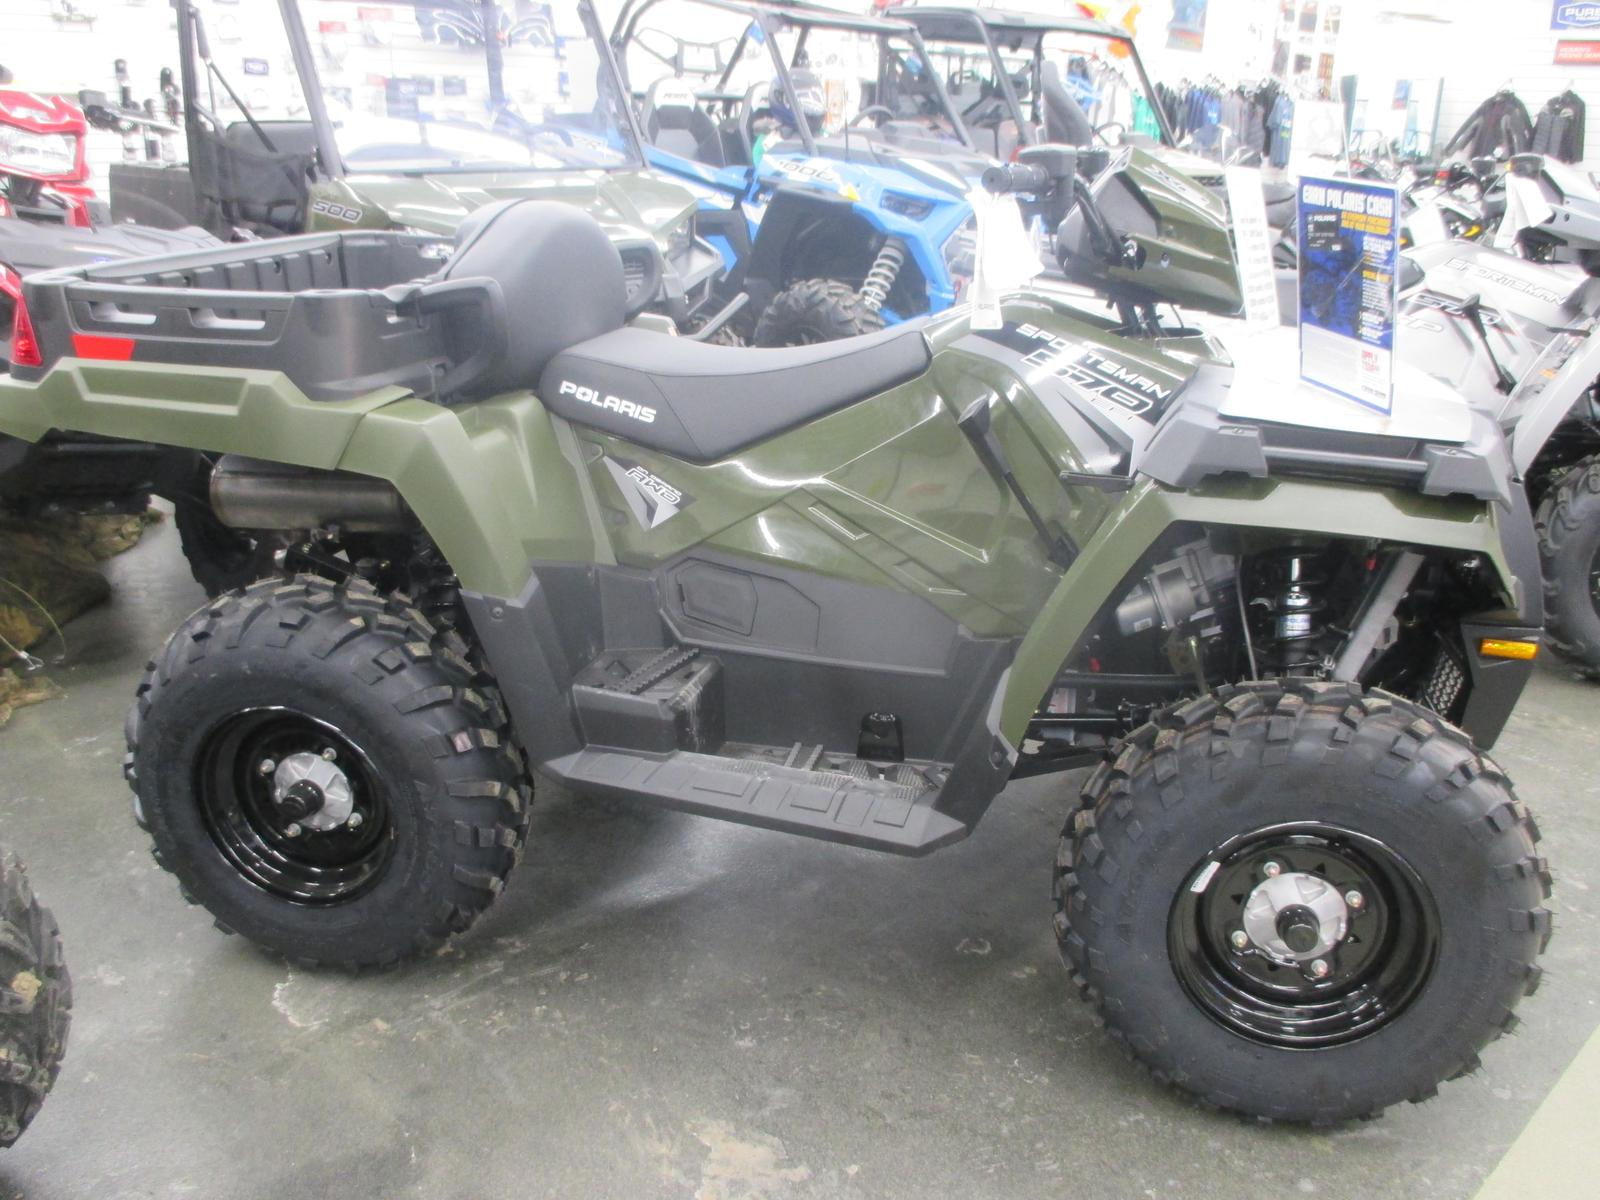 2019 Polaris Industries Sportsman® X2 570 - Sage Green for